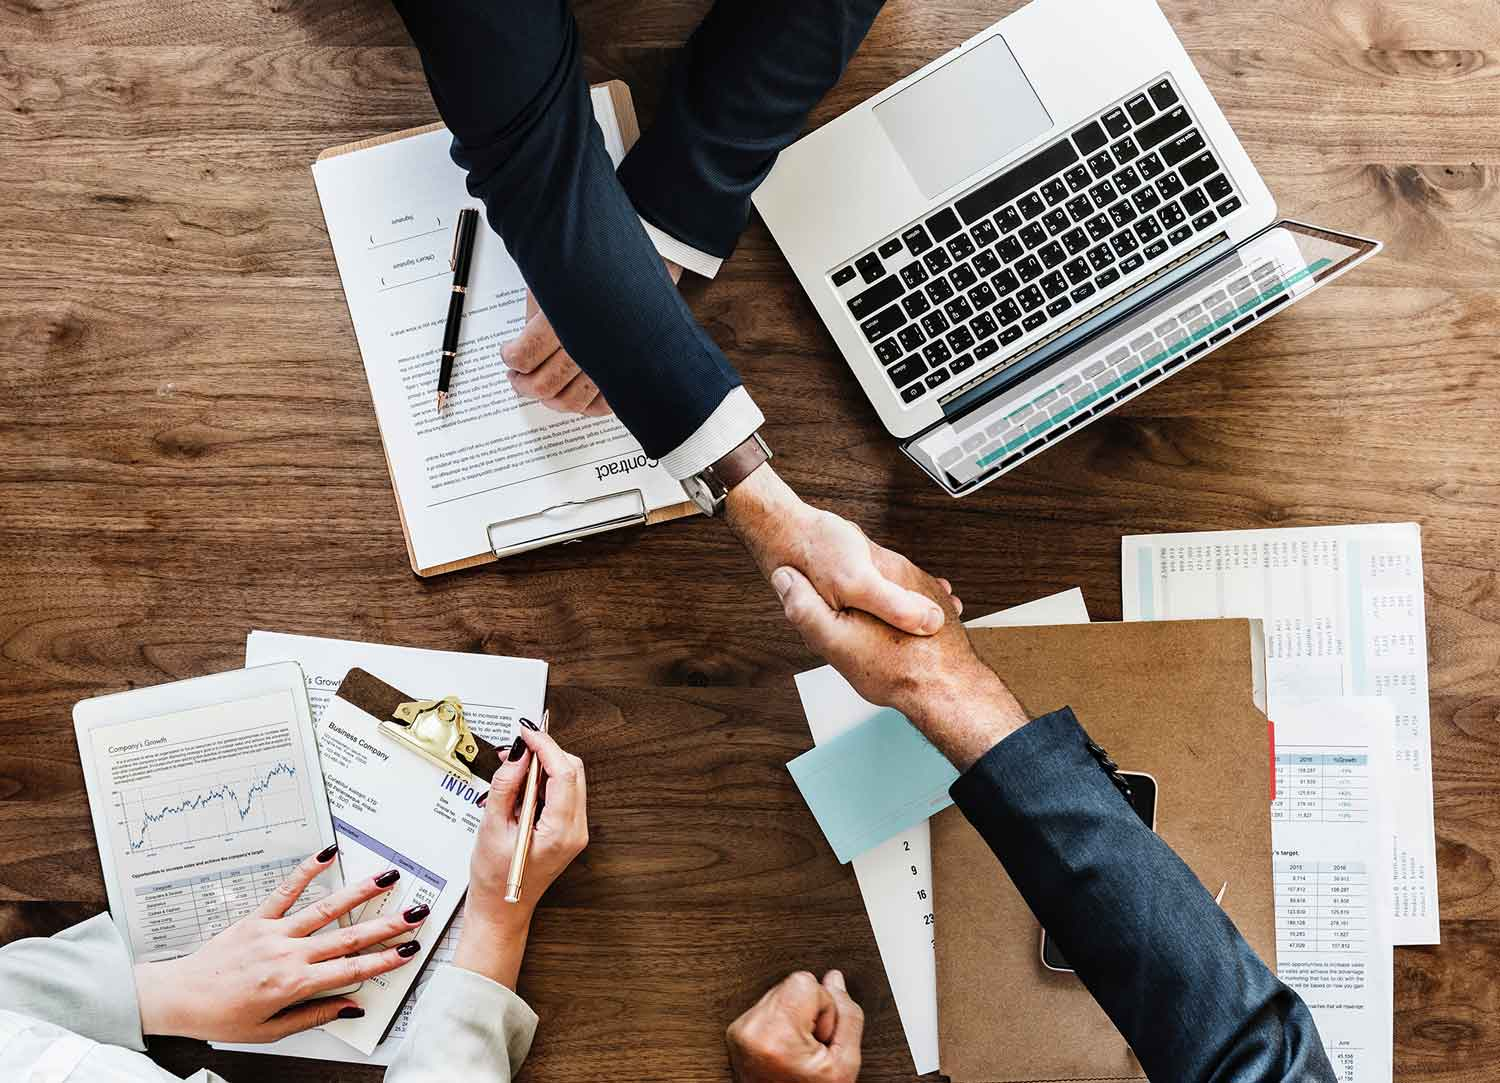 Handshake over the conclusion of a business contract